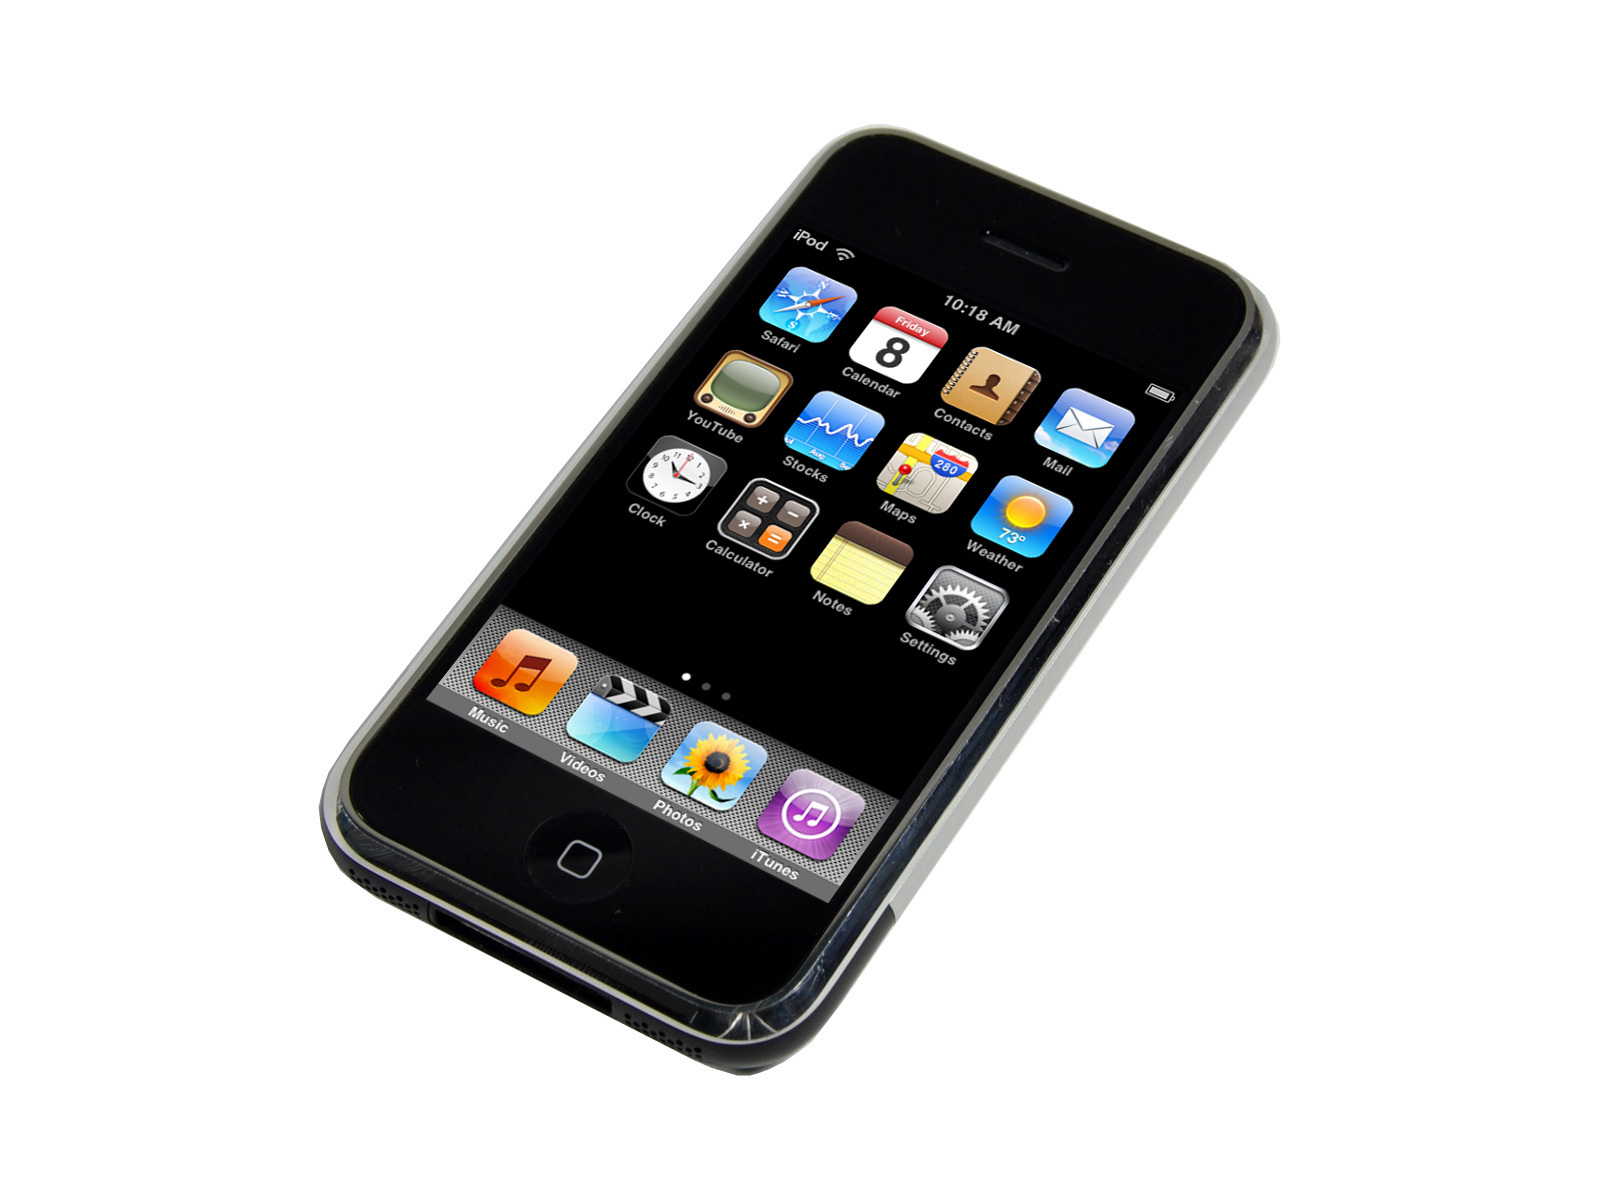 The first model of iPhone Model A1203 with 4 8 or 16 GB capacity 1600x1200